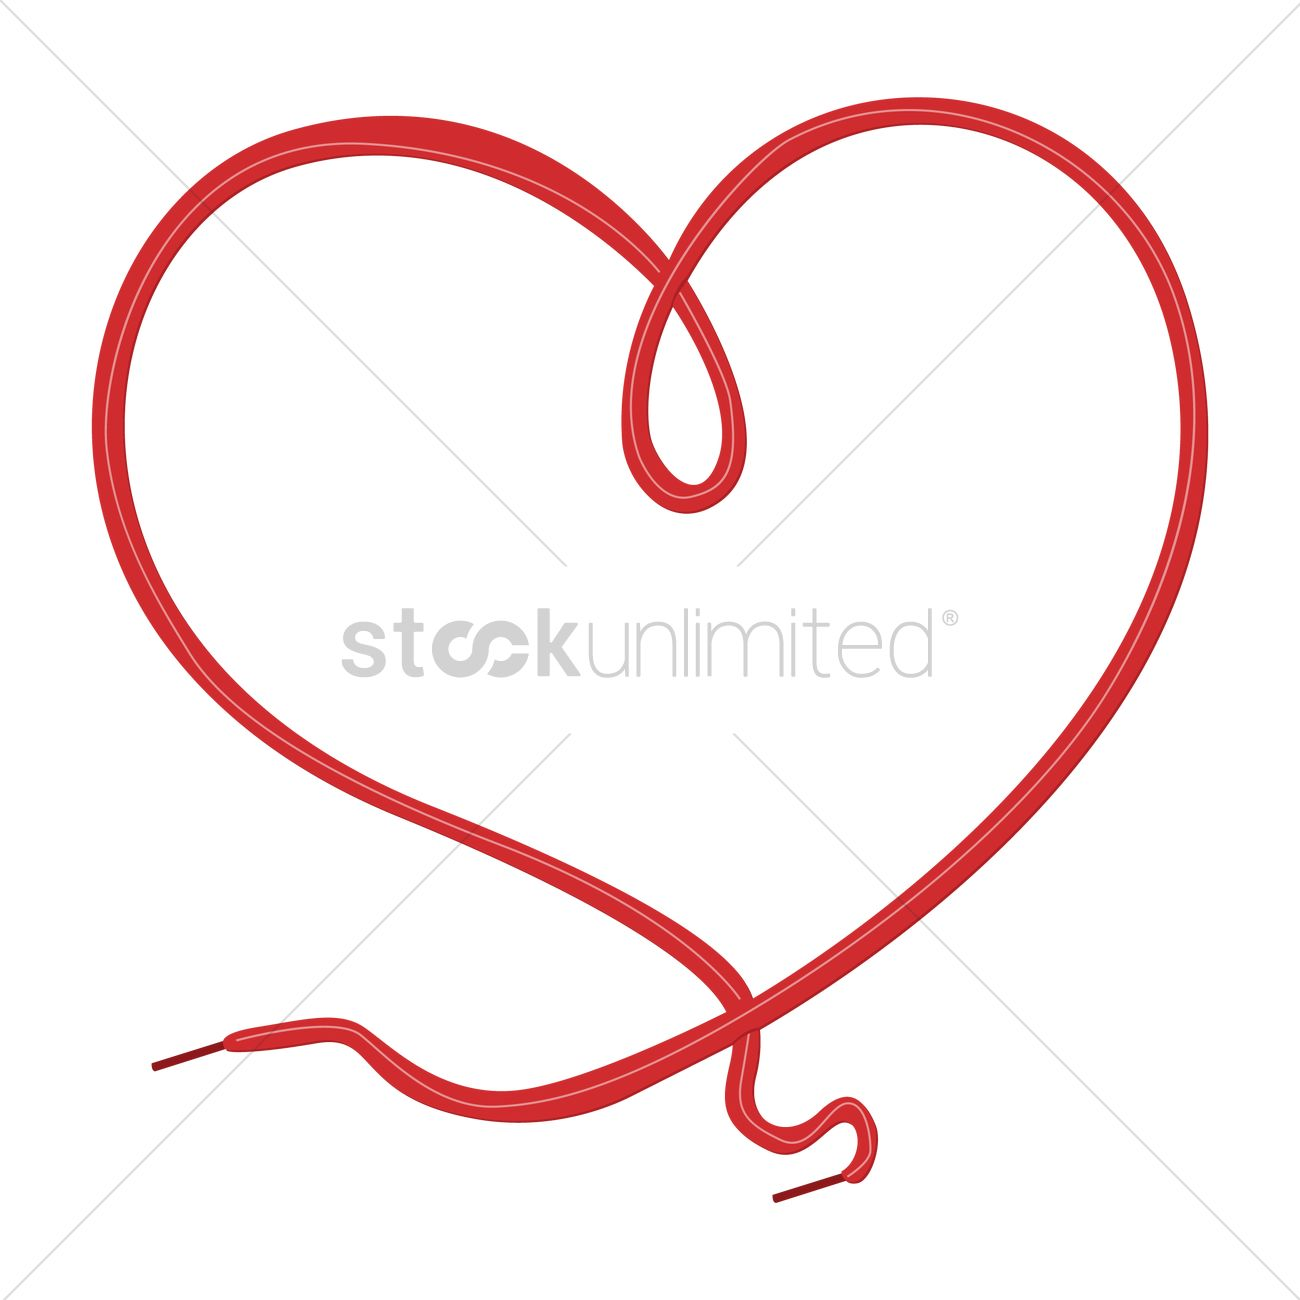 Heart design with shoe lace Vector Image.